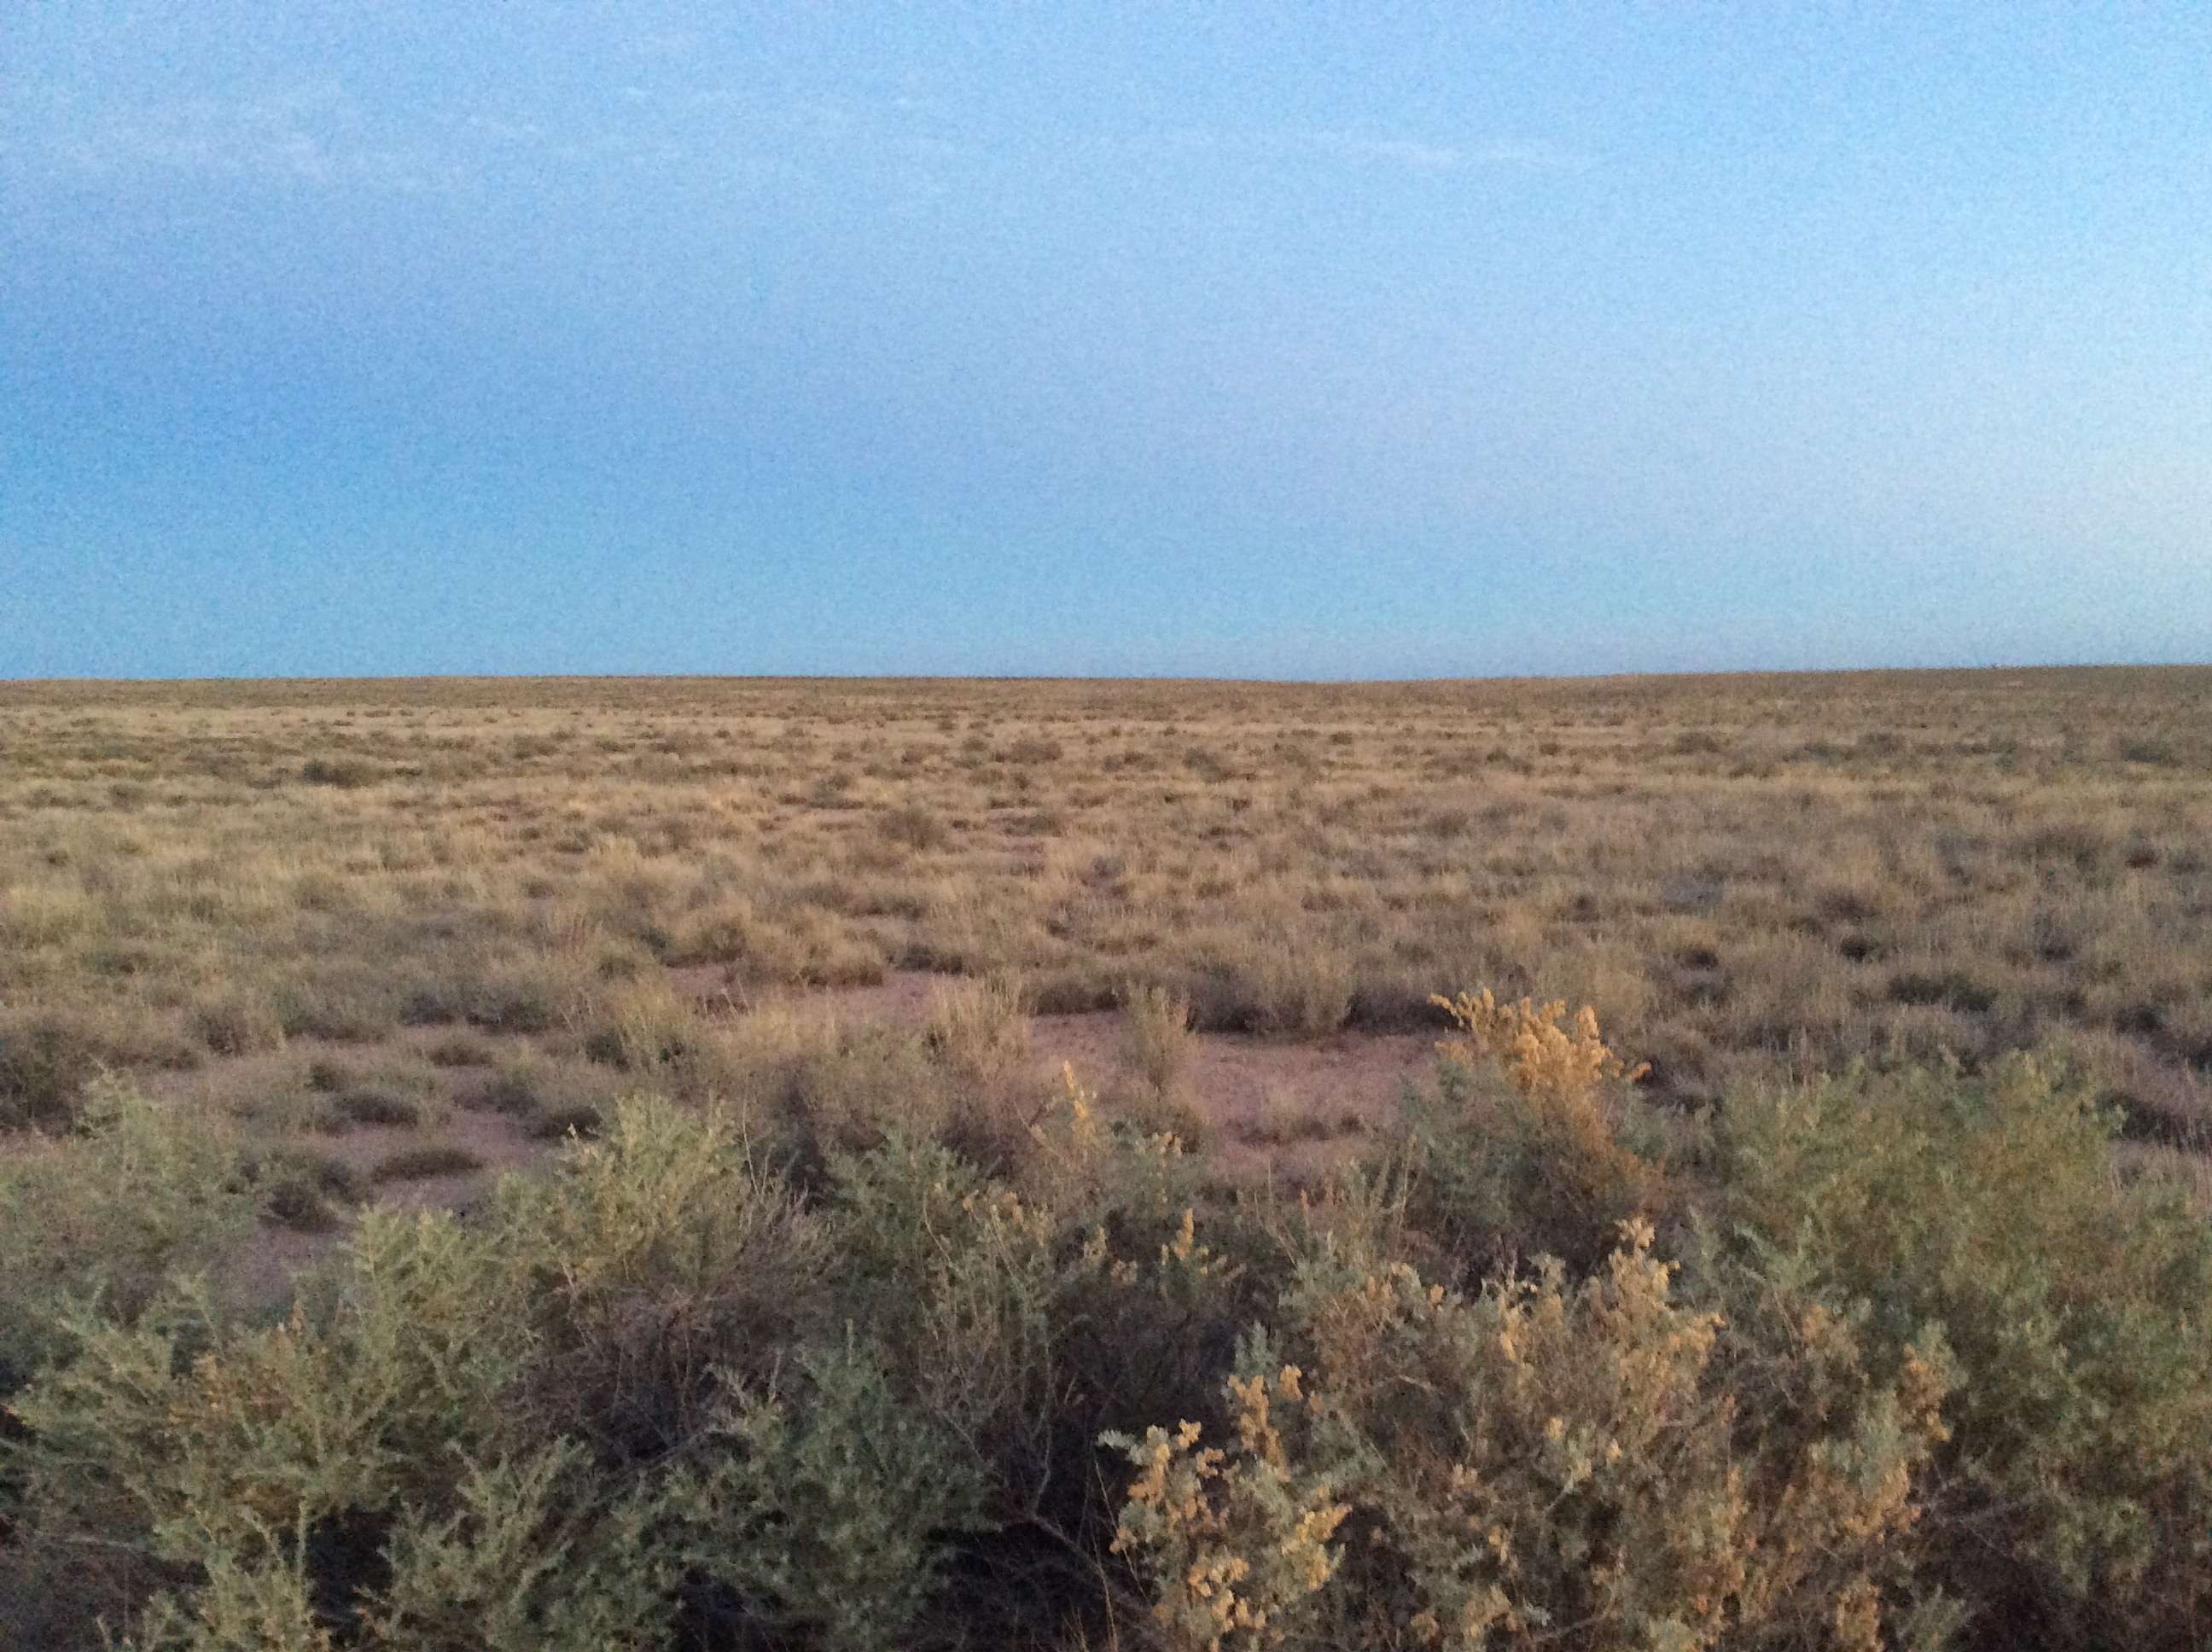 Photo of the plains